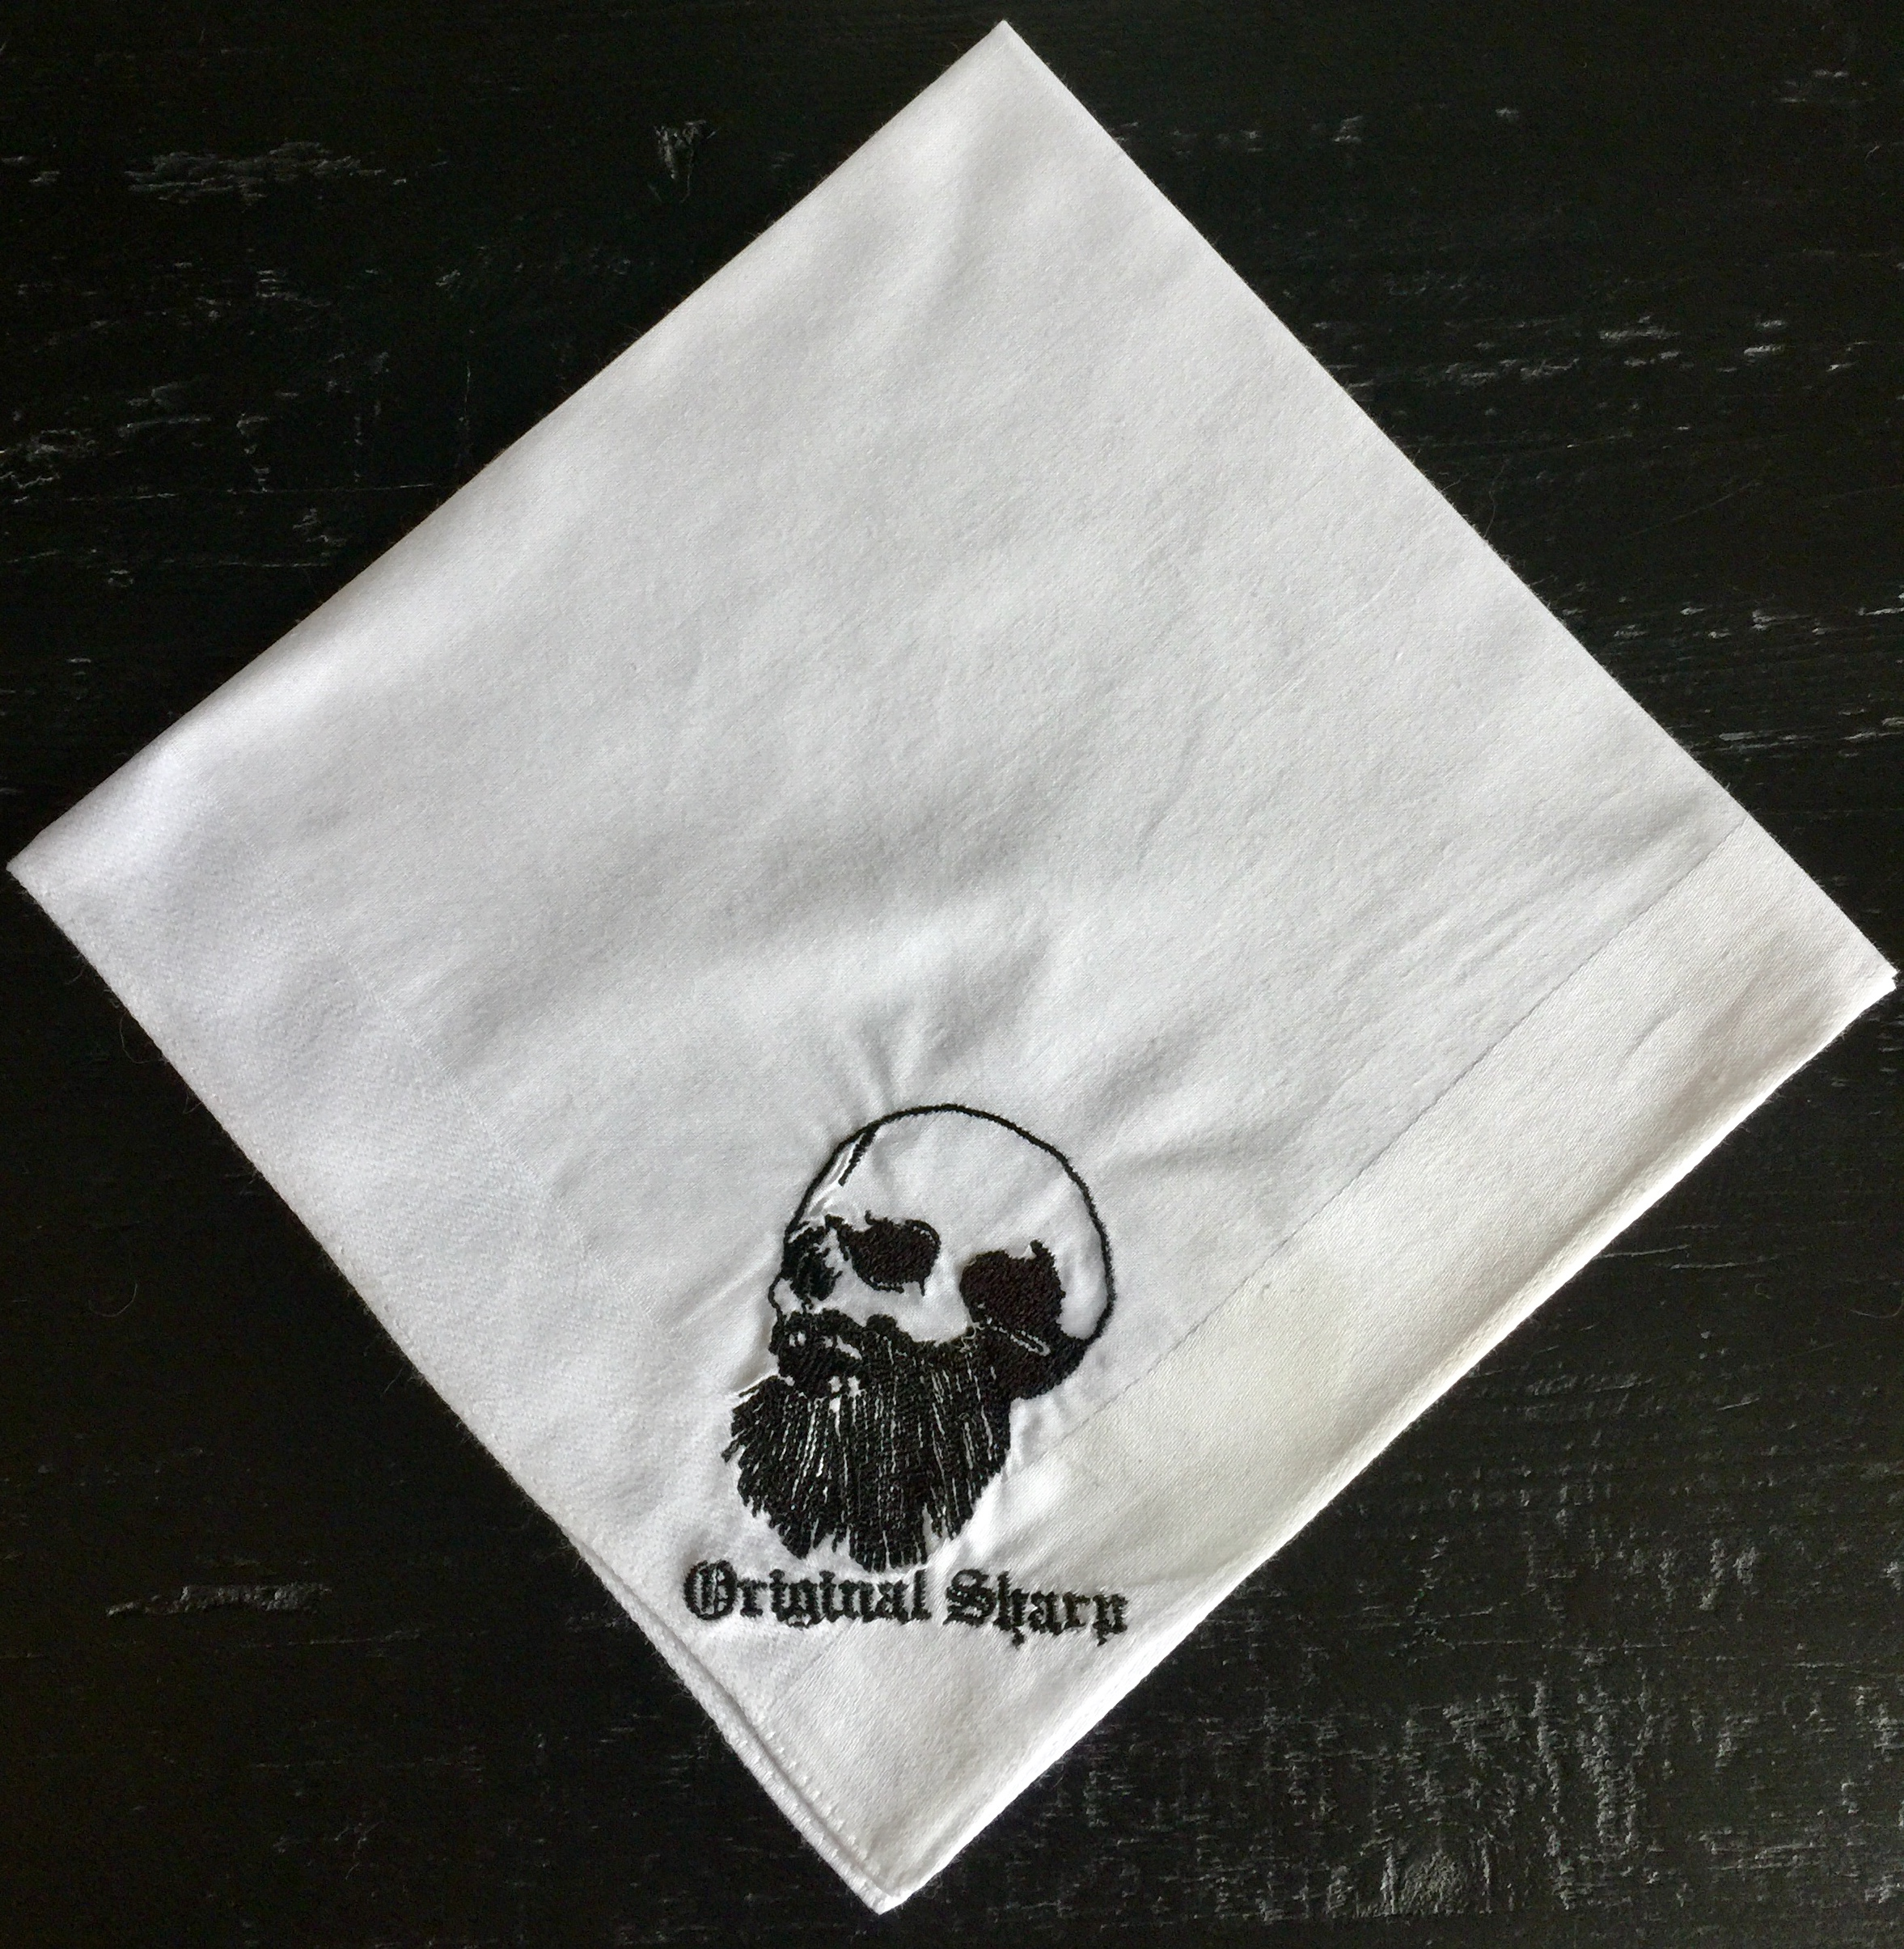 Original Sharp Barbershop Millburn NJ Custom Embroidered Handkerchief